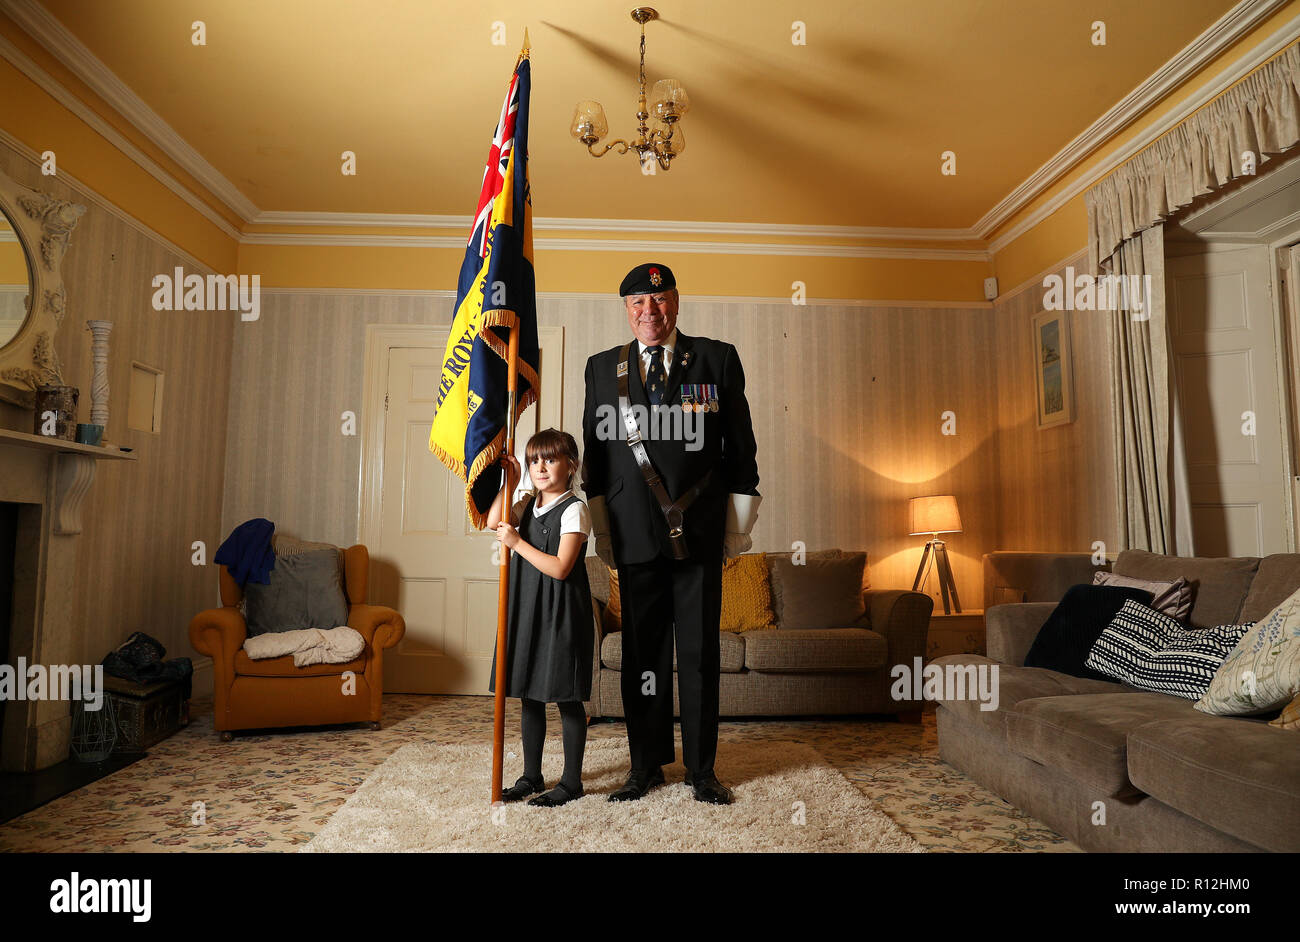 Mollie Stonelake, seven, holds a full-size standard from the Torpoint & District Branch of the Royal British Legion alongside branch chairman Colin Prideaux, in her family home in Torpoint, Cornwall. Mollie went on her first parade aged five and will carry a specially-made miniature standard in a service on Sunday in her home town of Torpoint in Cornwall. Stock Photo